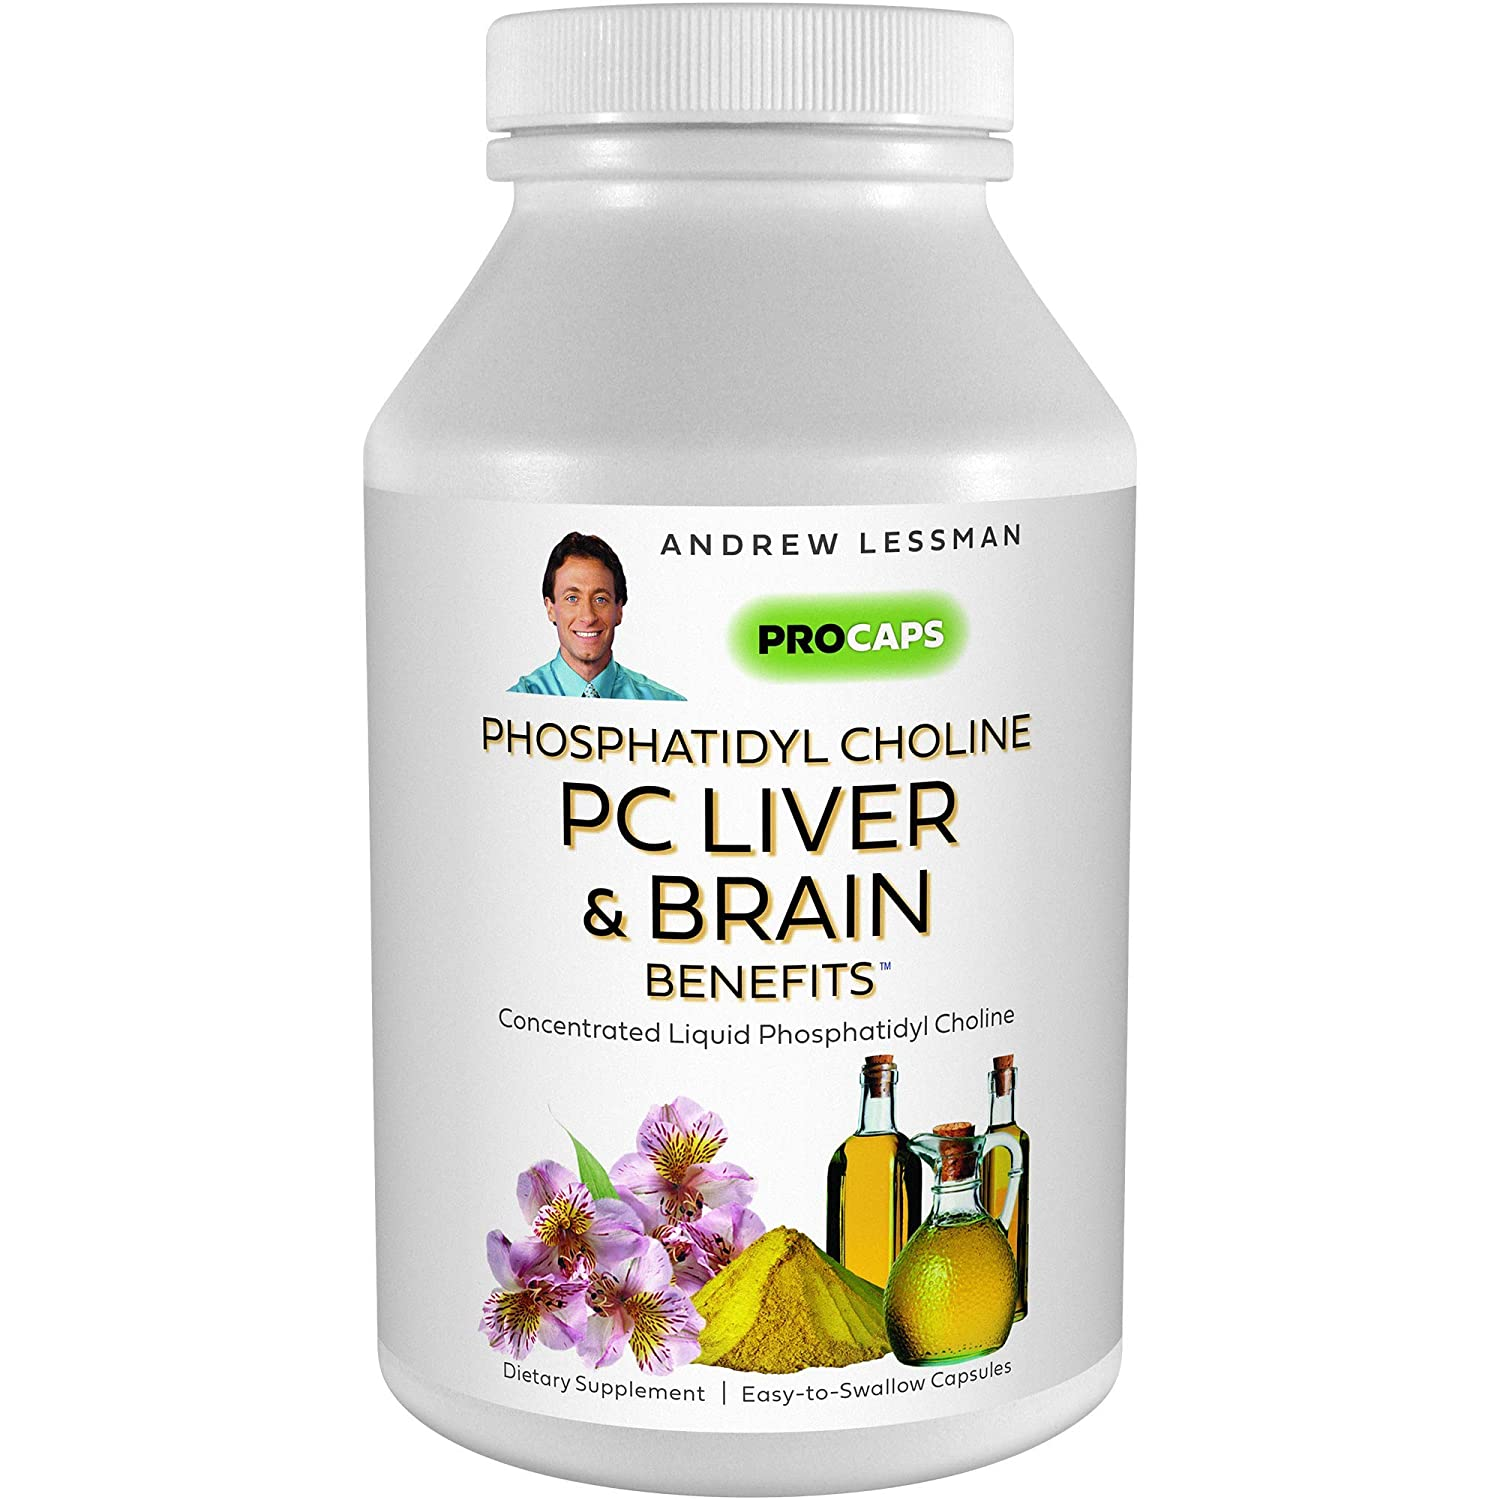 Andrew Lessman PC Liver & Brain Benefits 180 Softgels - Phosphatidyl Choline, Most Important Building Block for Healthy Liver and Brain Structure and Function. No Additives. Easy to Swallow Softgels